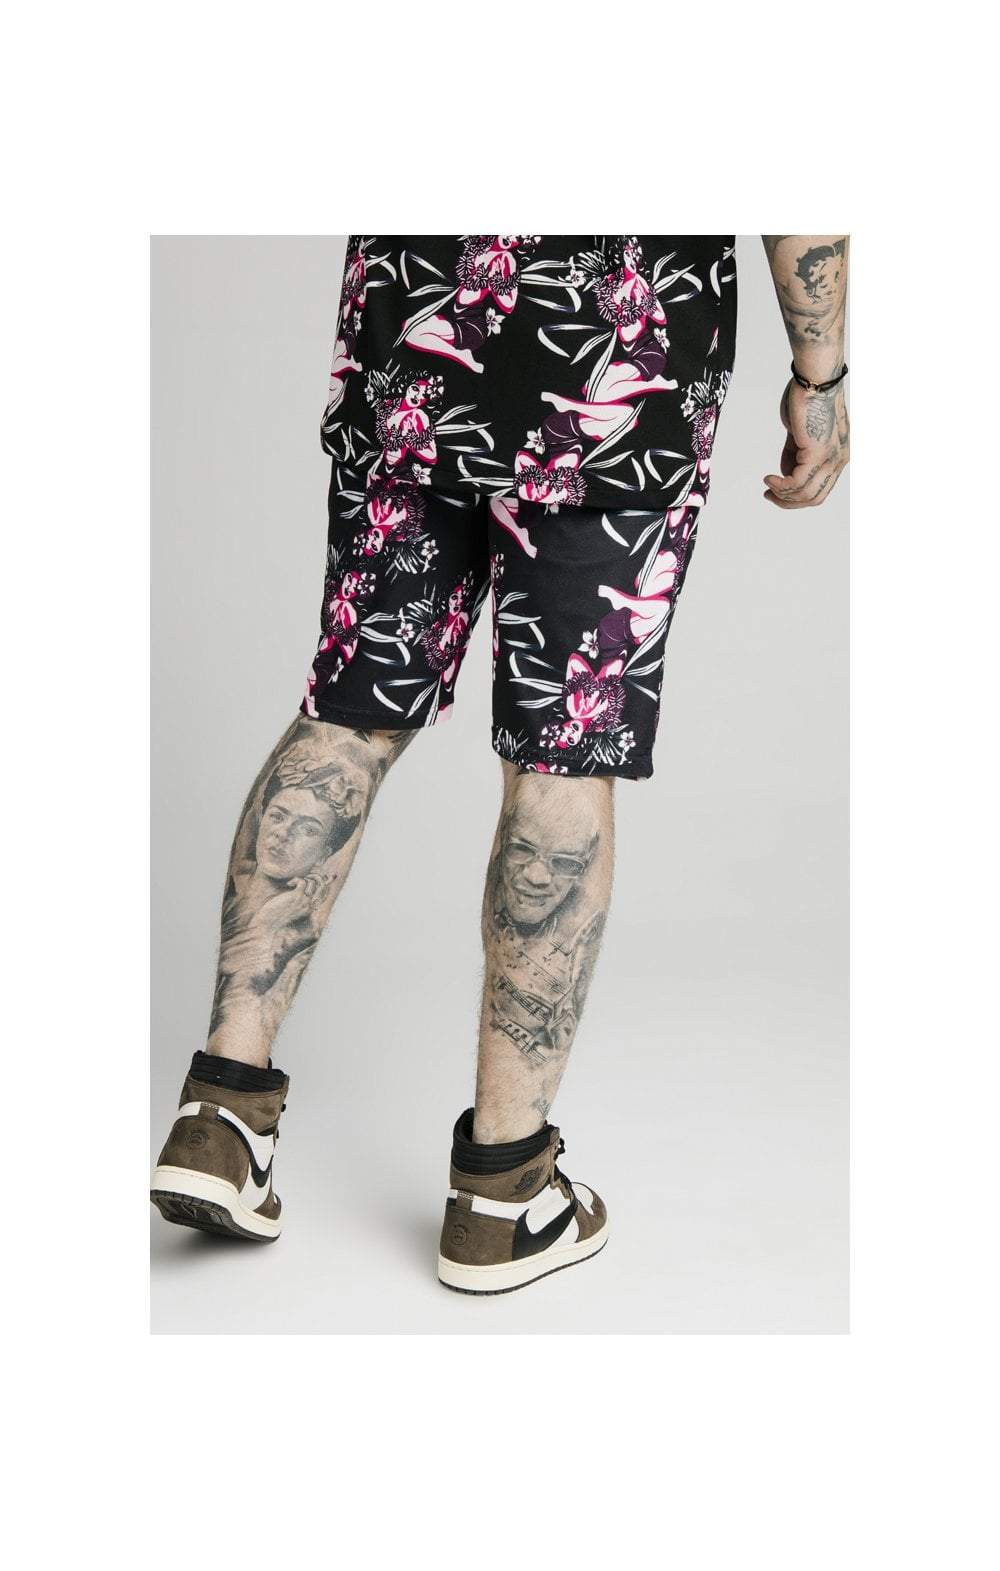 SikSilk Tropics Fitted Shorts - Black & Tropics (2)